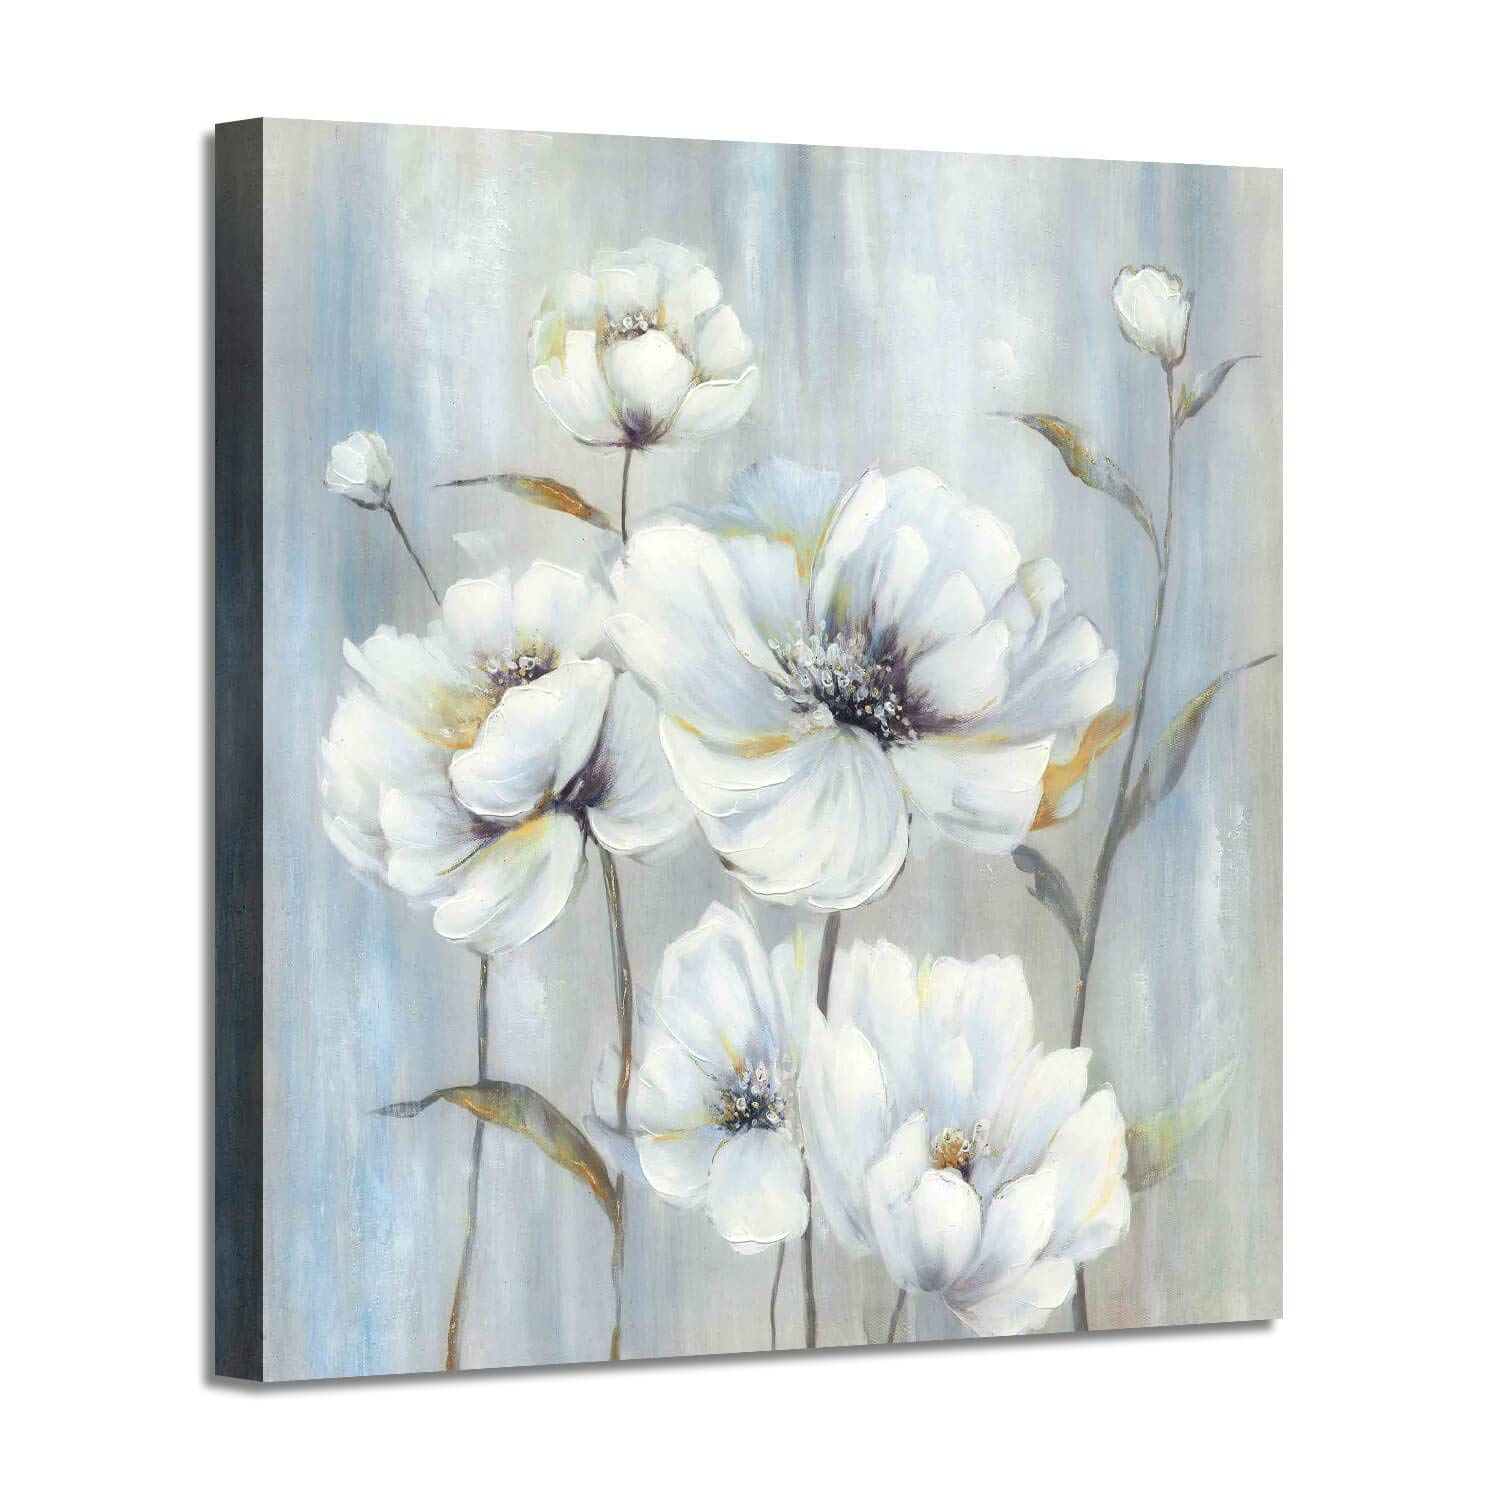 Abstract Flower Painting Wall Art: White Peony Picture Bouquet with White Silver Foil Artwork on Canvas for Bedroom ( 24'' x 24'' x 1 Panel )